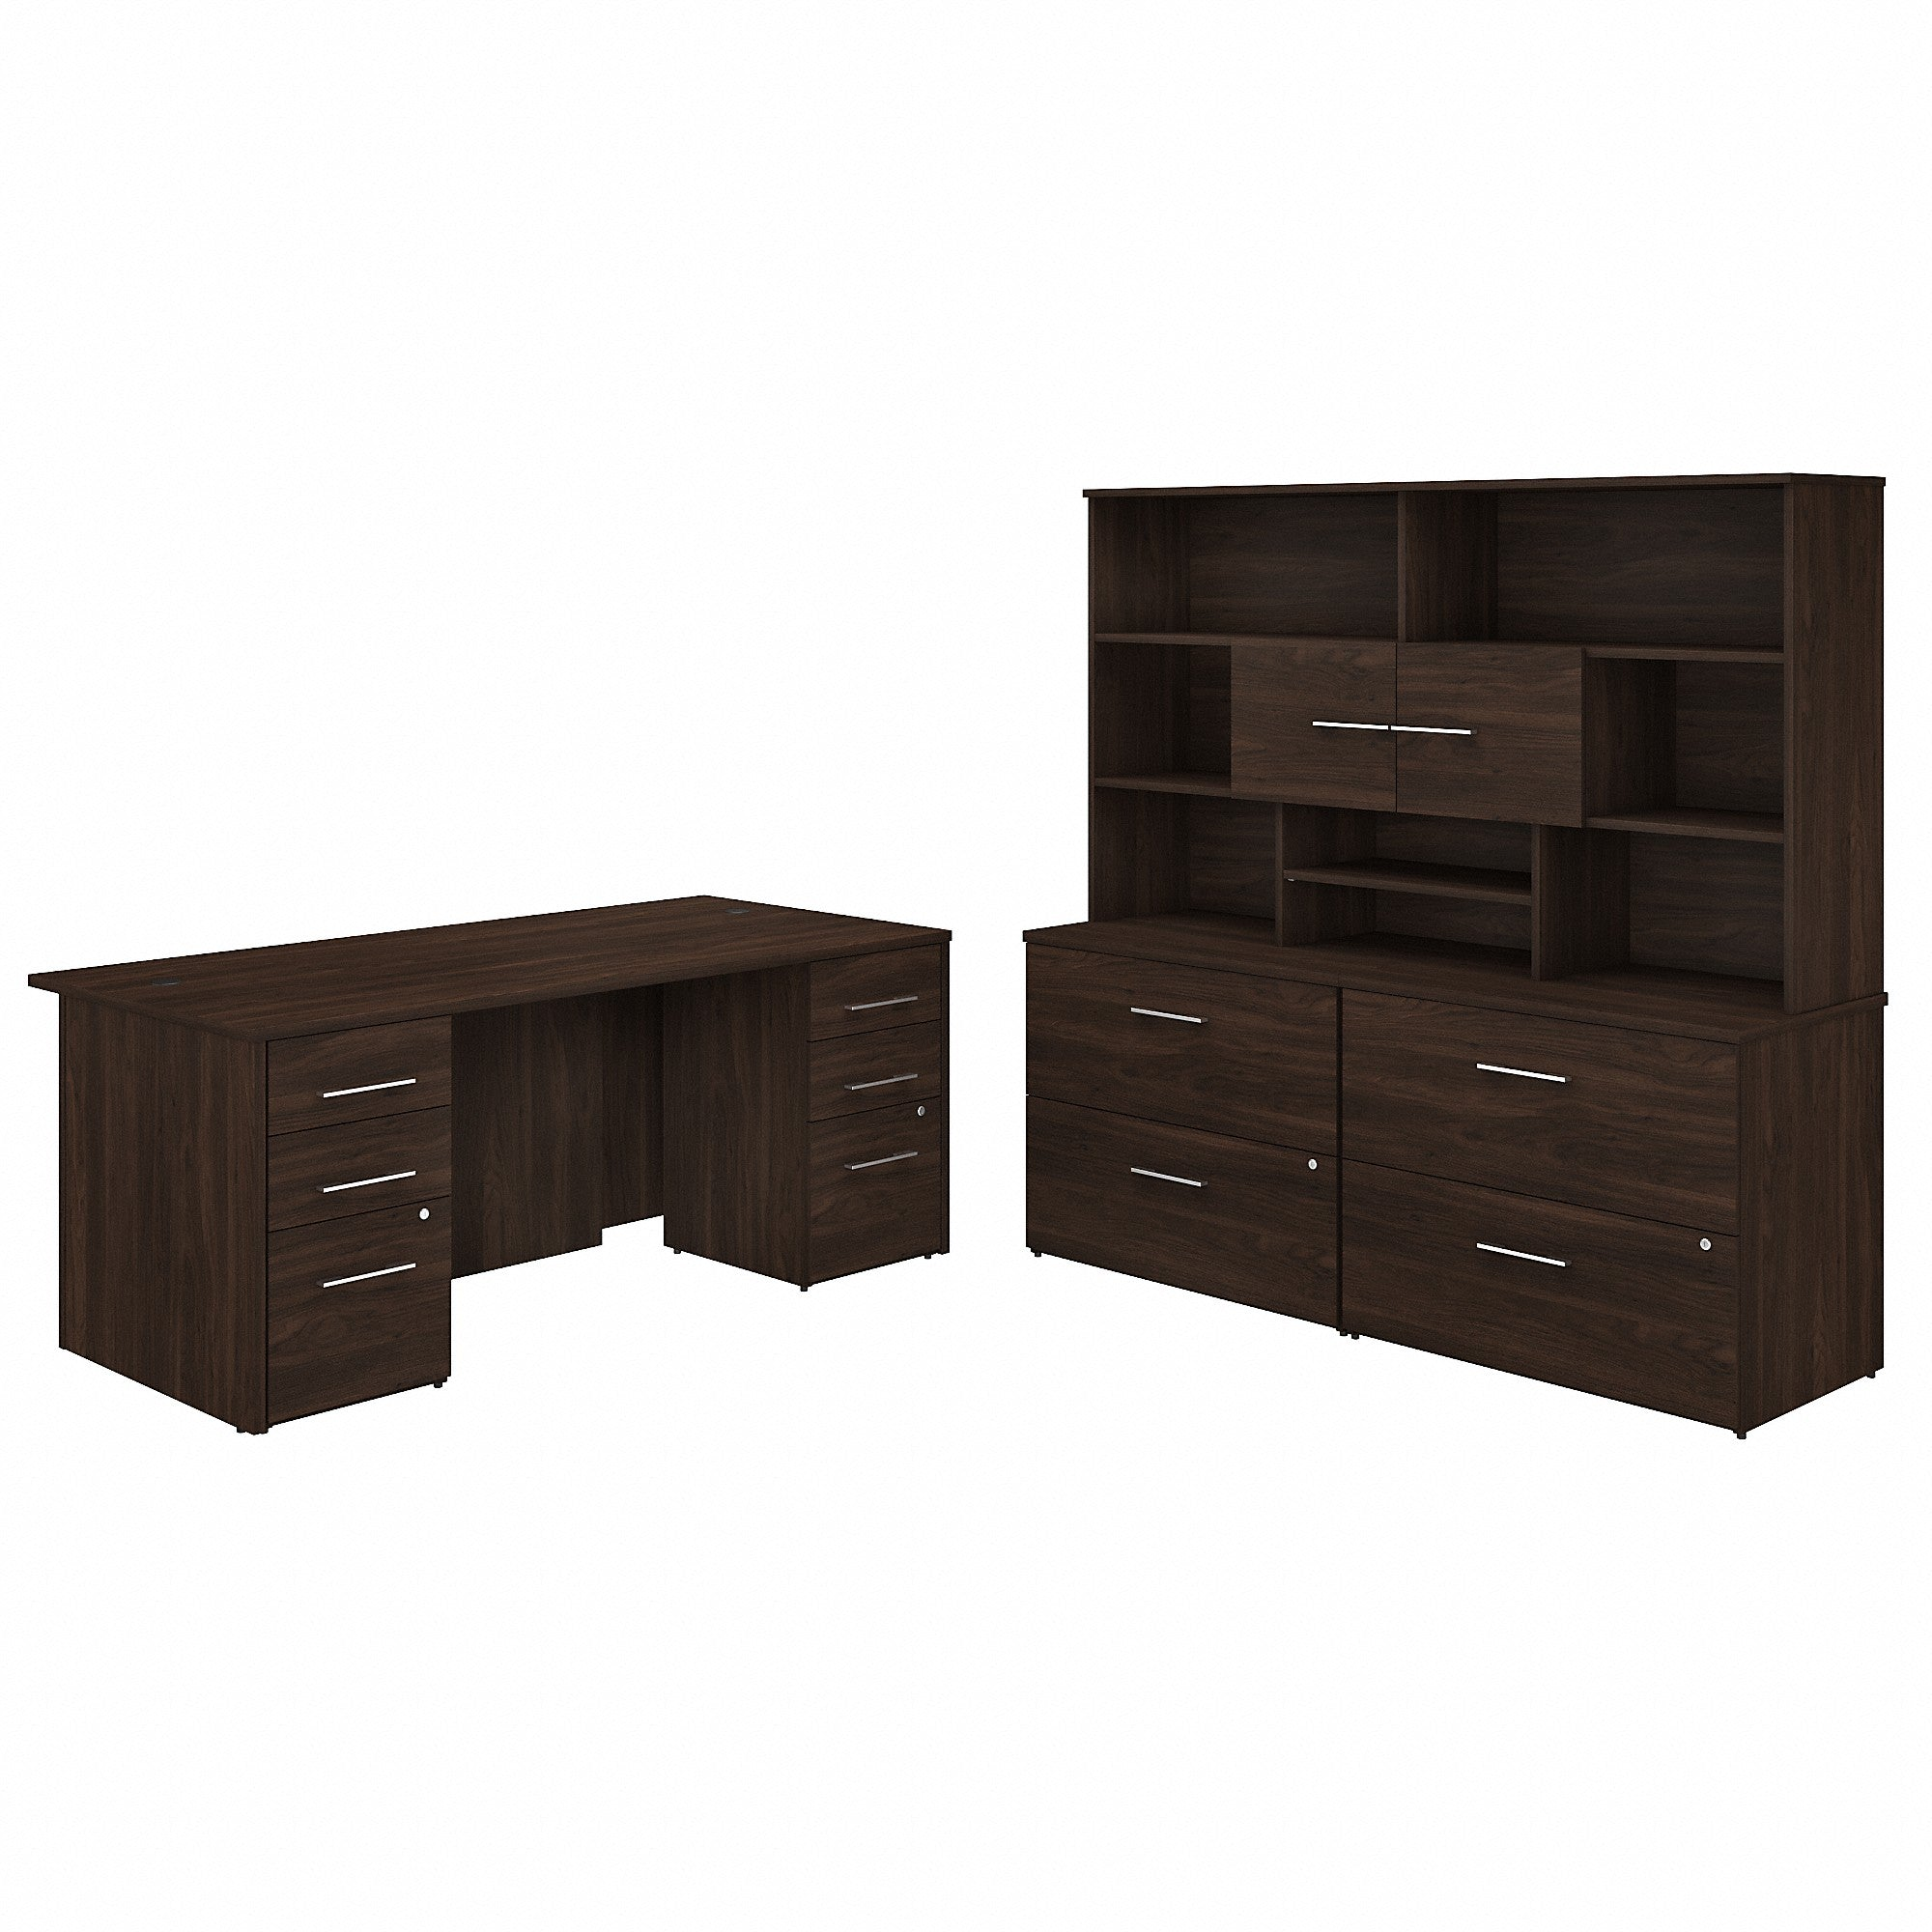 Bush Business Furniture Office 500 72W x 36D Executive Desk with Drawers, Lateral File Cabinets and Hutch | Black Walnut